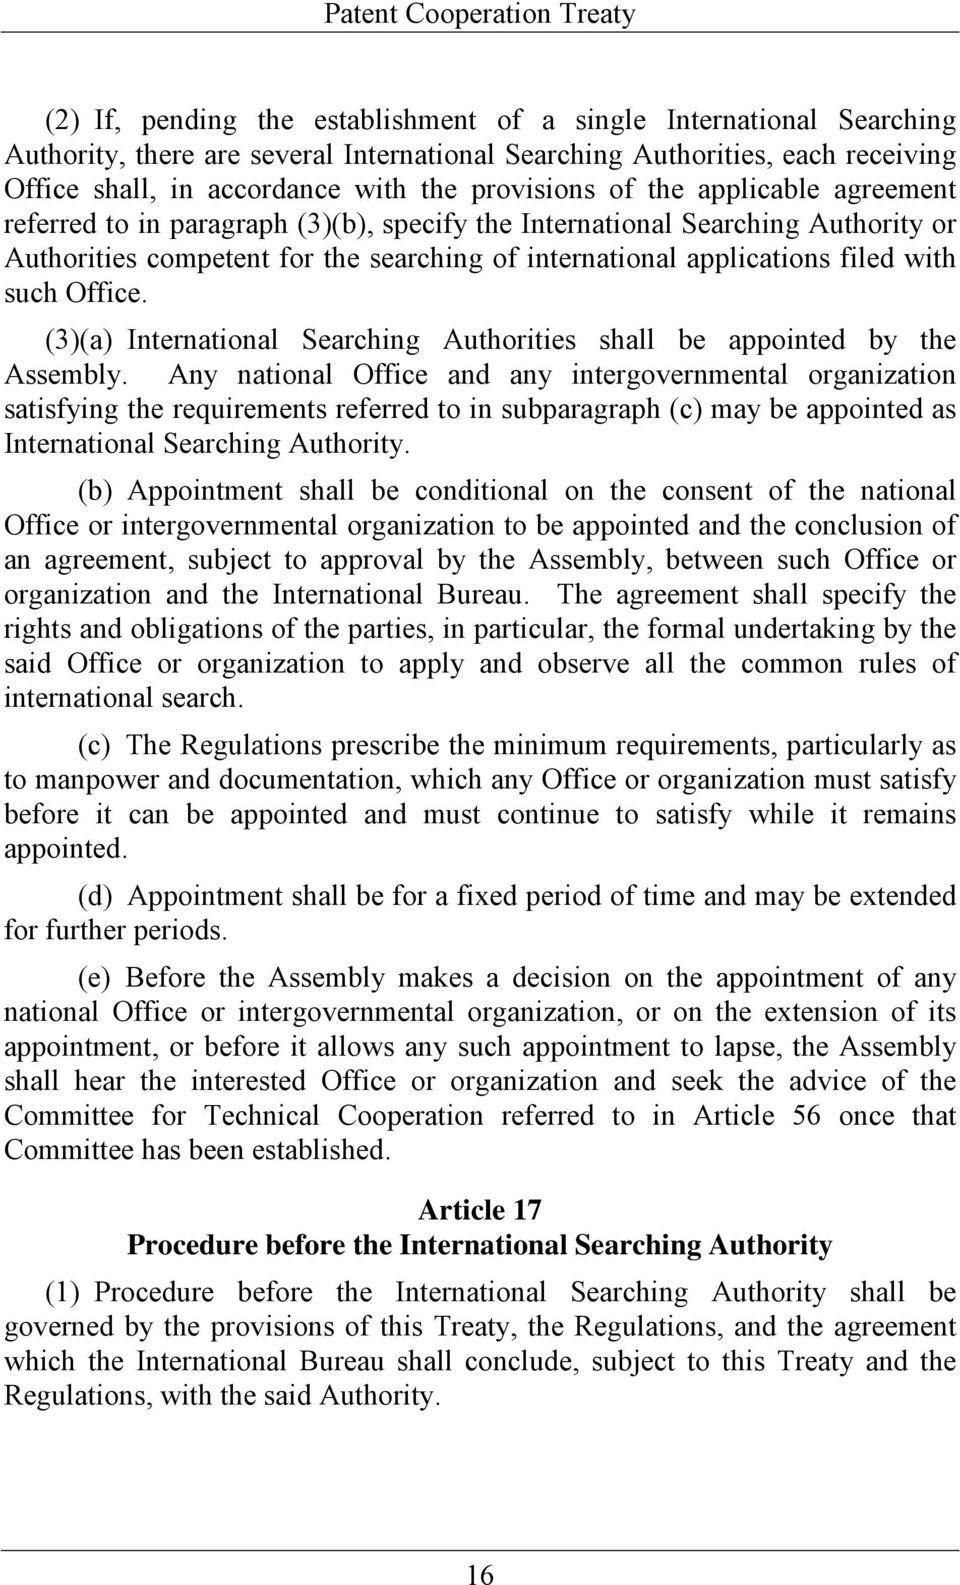 Office. (3)(a) International Searching Authorities shall be appointed by the Assembly.